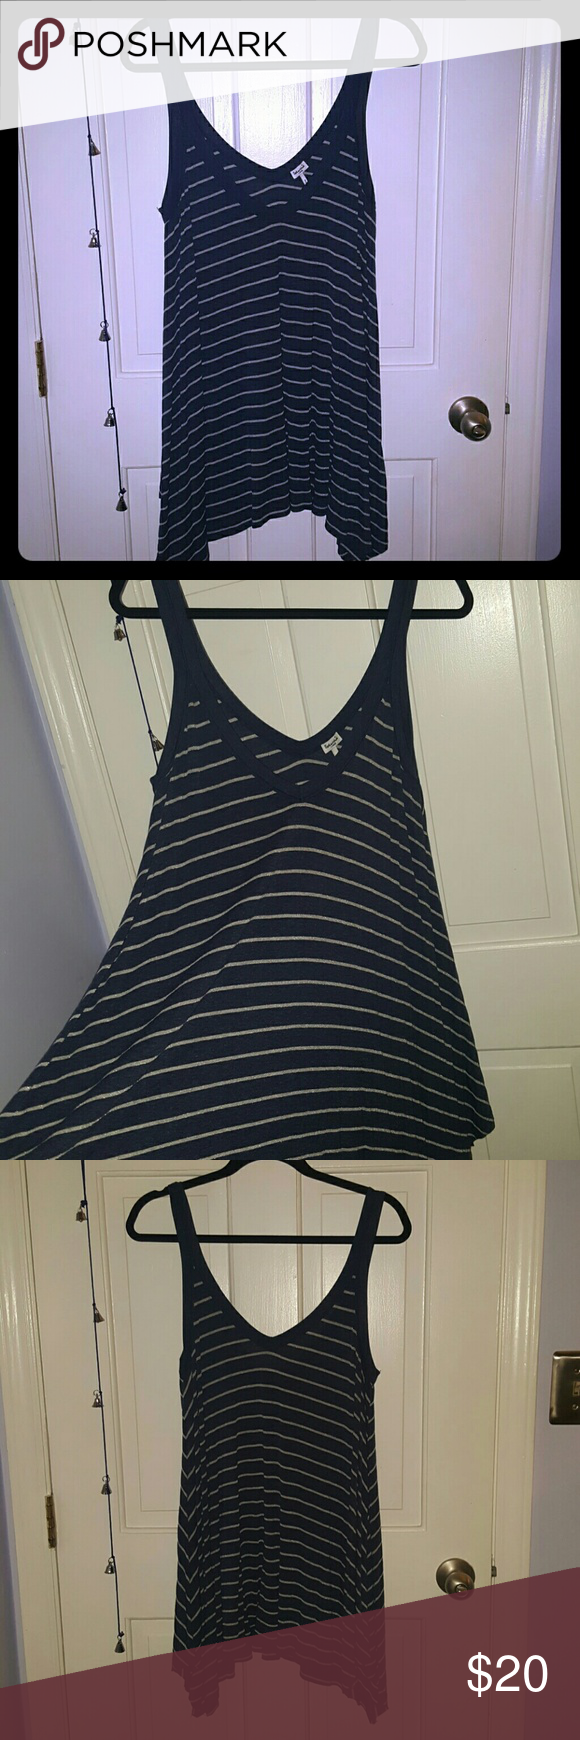 Splendid handkerchief tank top Blue and white (with silver thread) tank top. Very comfortable and fashionable. Great condition. Offers accepted. Splendid Tops Tank Tops